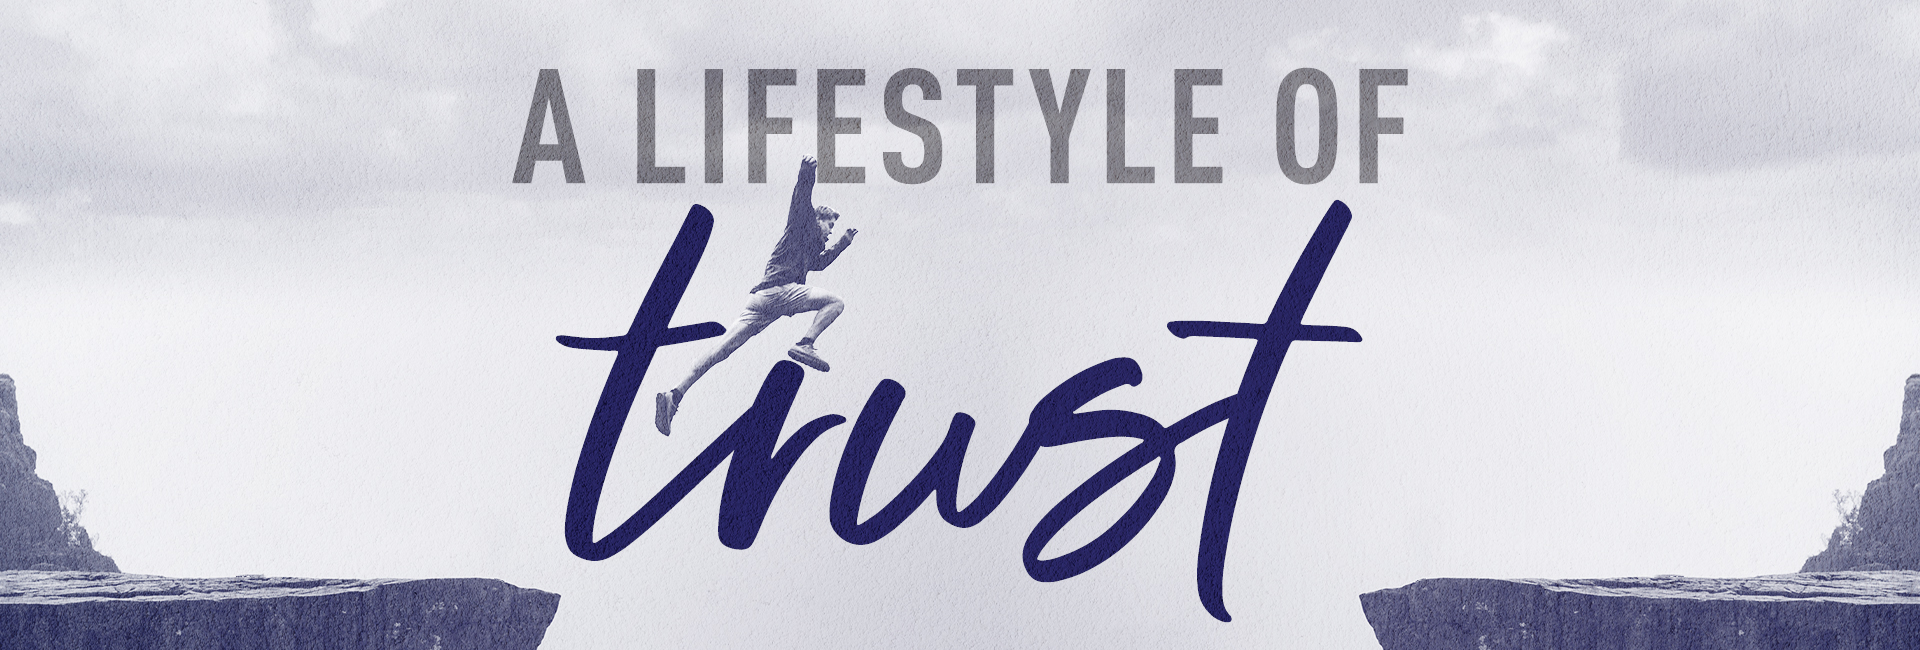 A Lifestyle of Trust